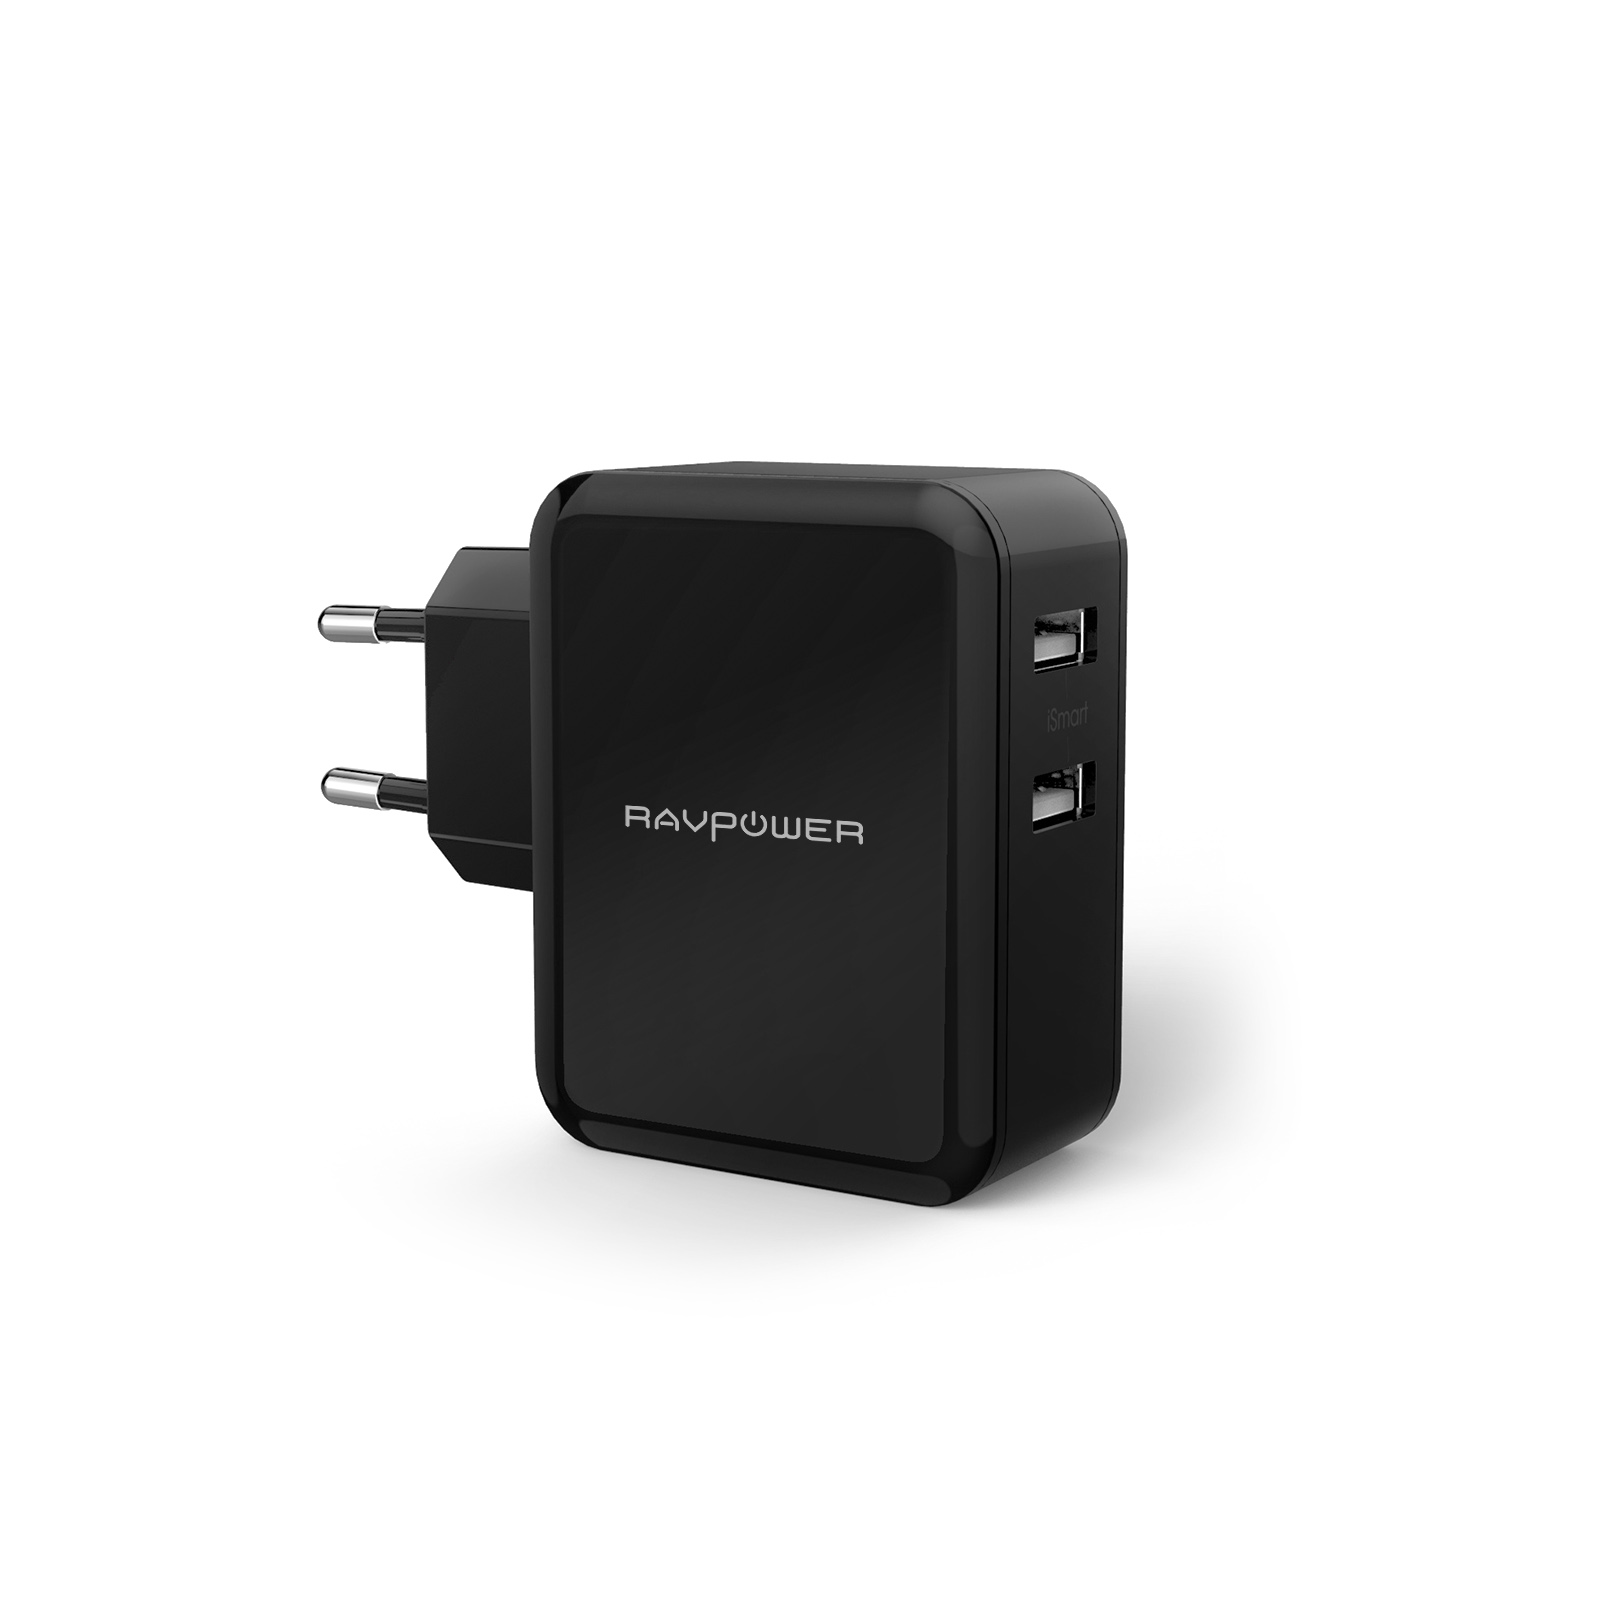 RAVPower USB Ladegerät 2-Port 24W 4,8A Reise Ladeadapter mit iSmart Technologie für iPhone X XS XR XS Max 8 7 6 Plus, iPad Pro Air Mini, Galaxy S9 S8 Plus, LG, Huawei, HTC, Bluetooth Kopfhörer, Mp3 usw. schwarz